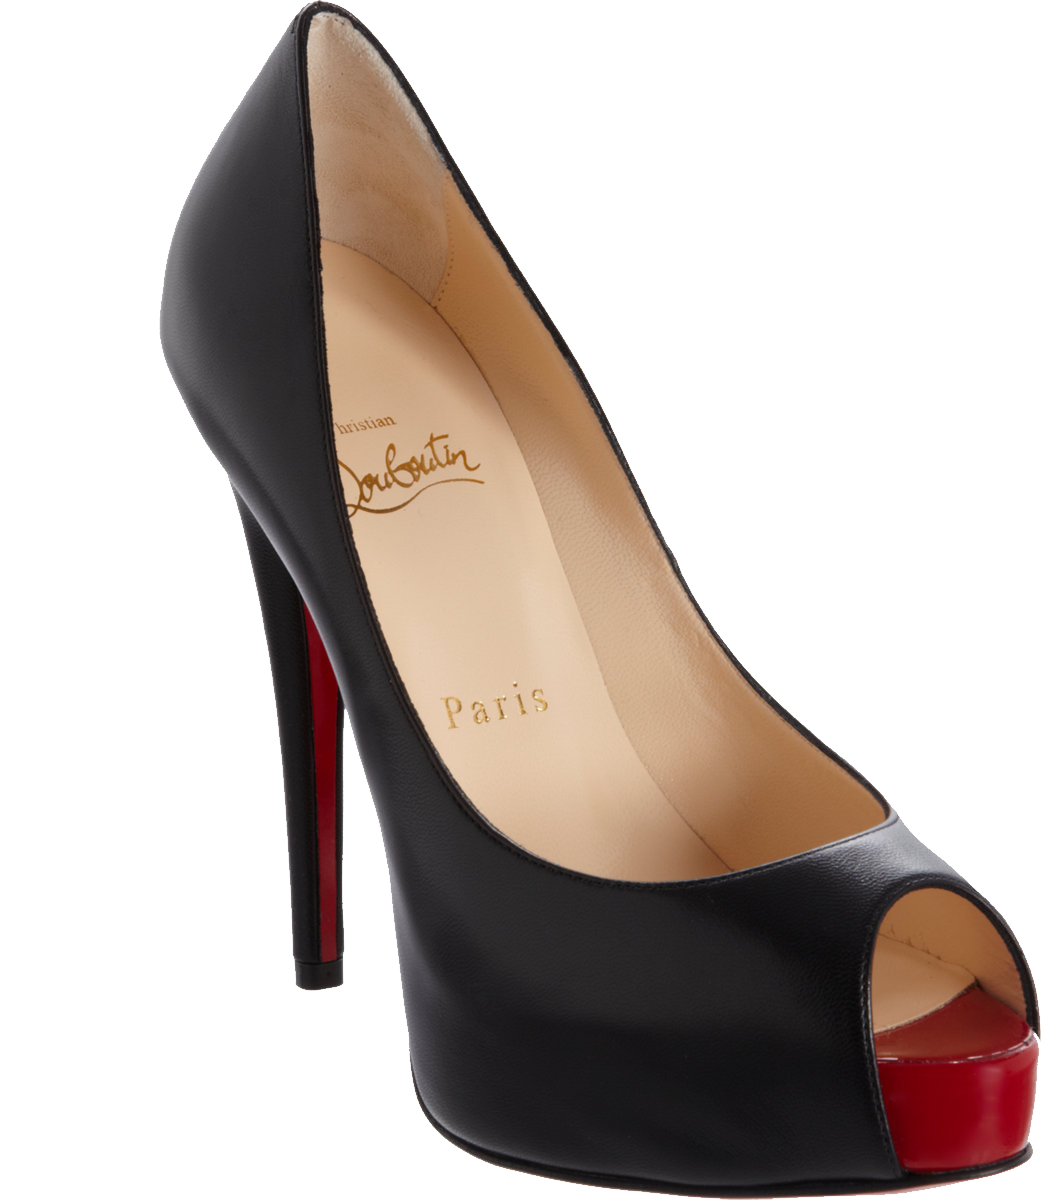 louboutin png image christian clipart stars christian clipart free